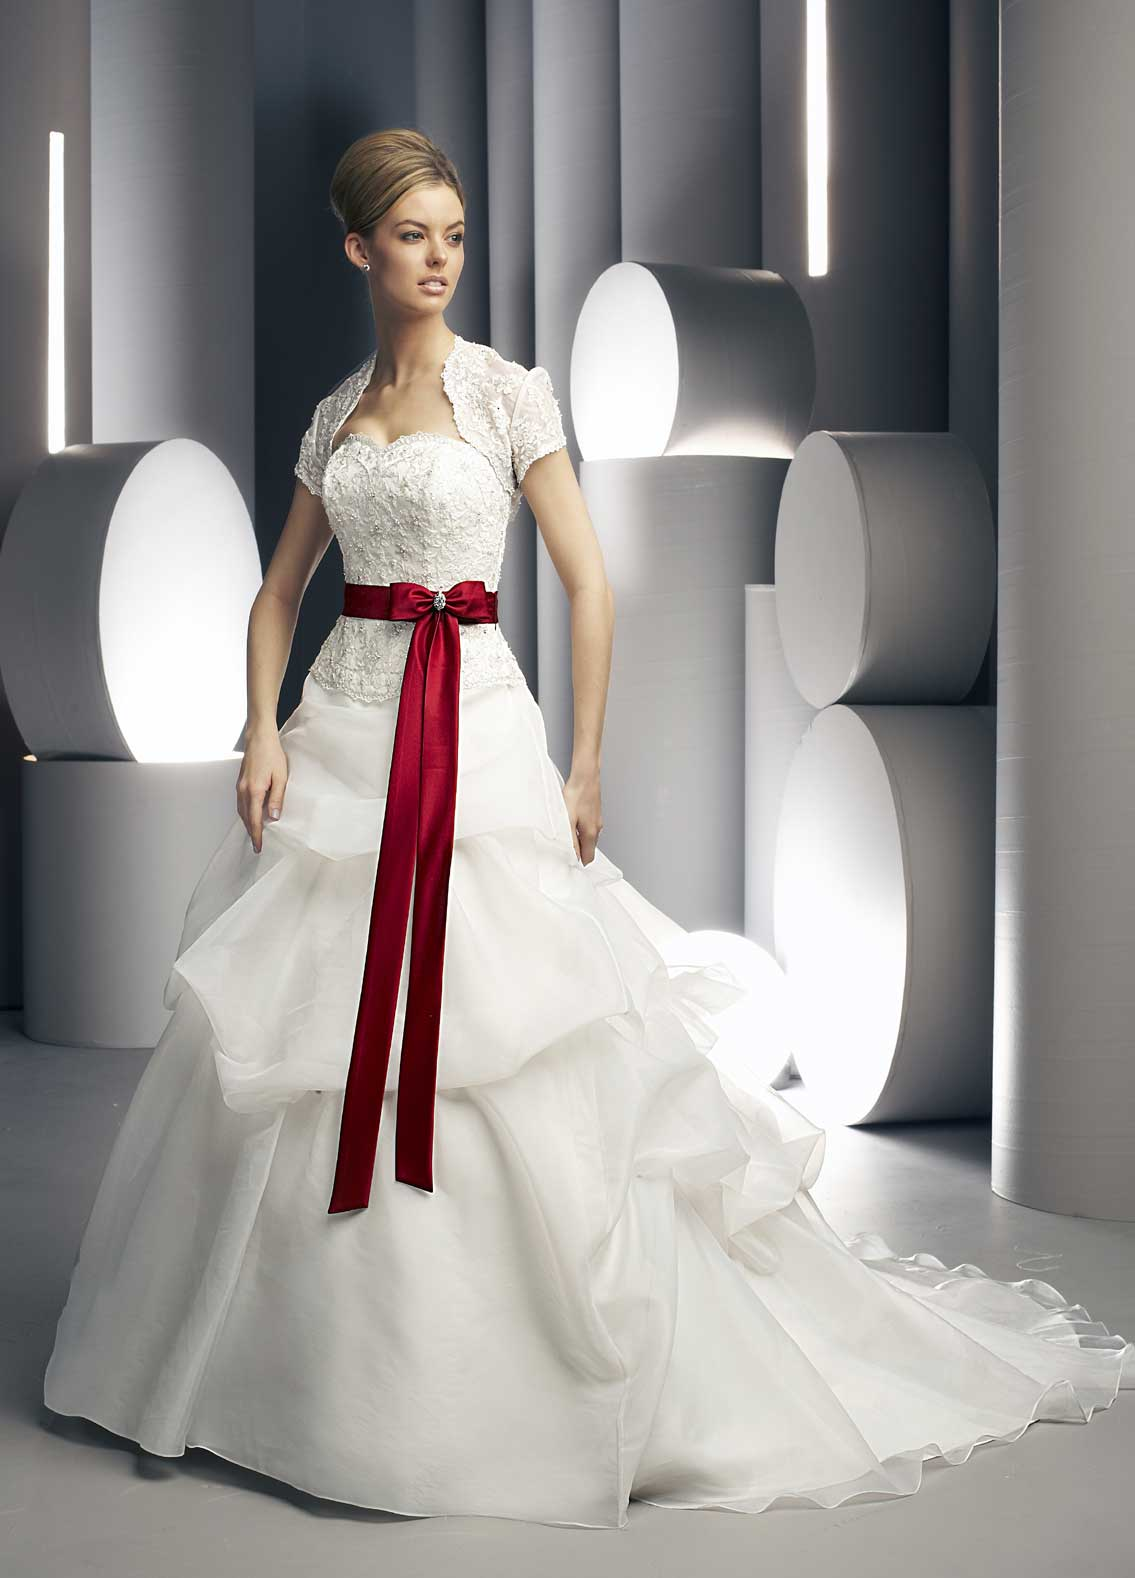 white wedding dress with red sashCherry Marry | Cherry Marry